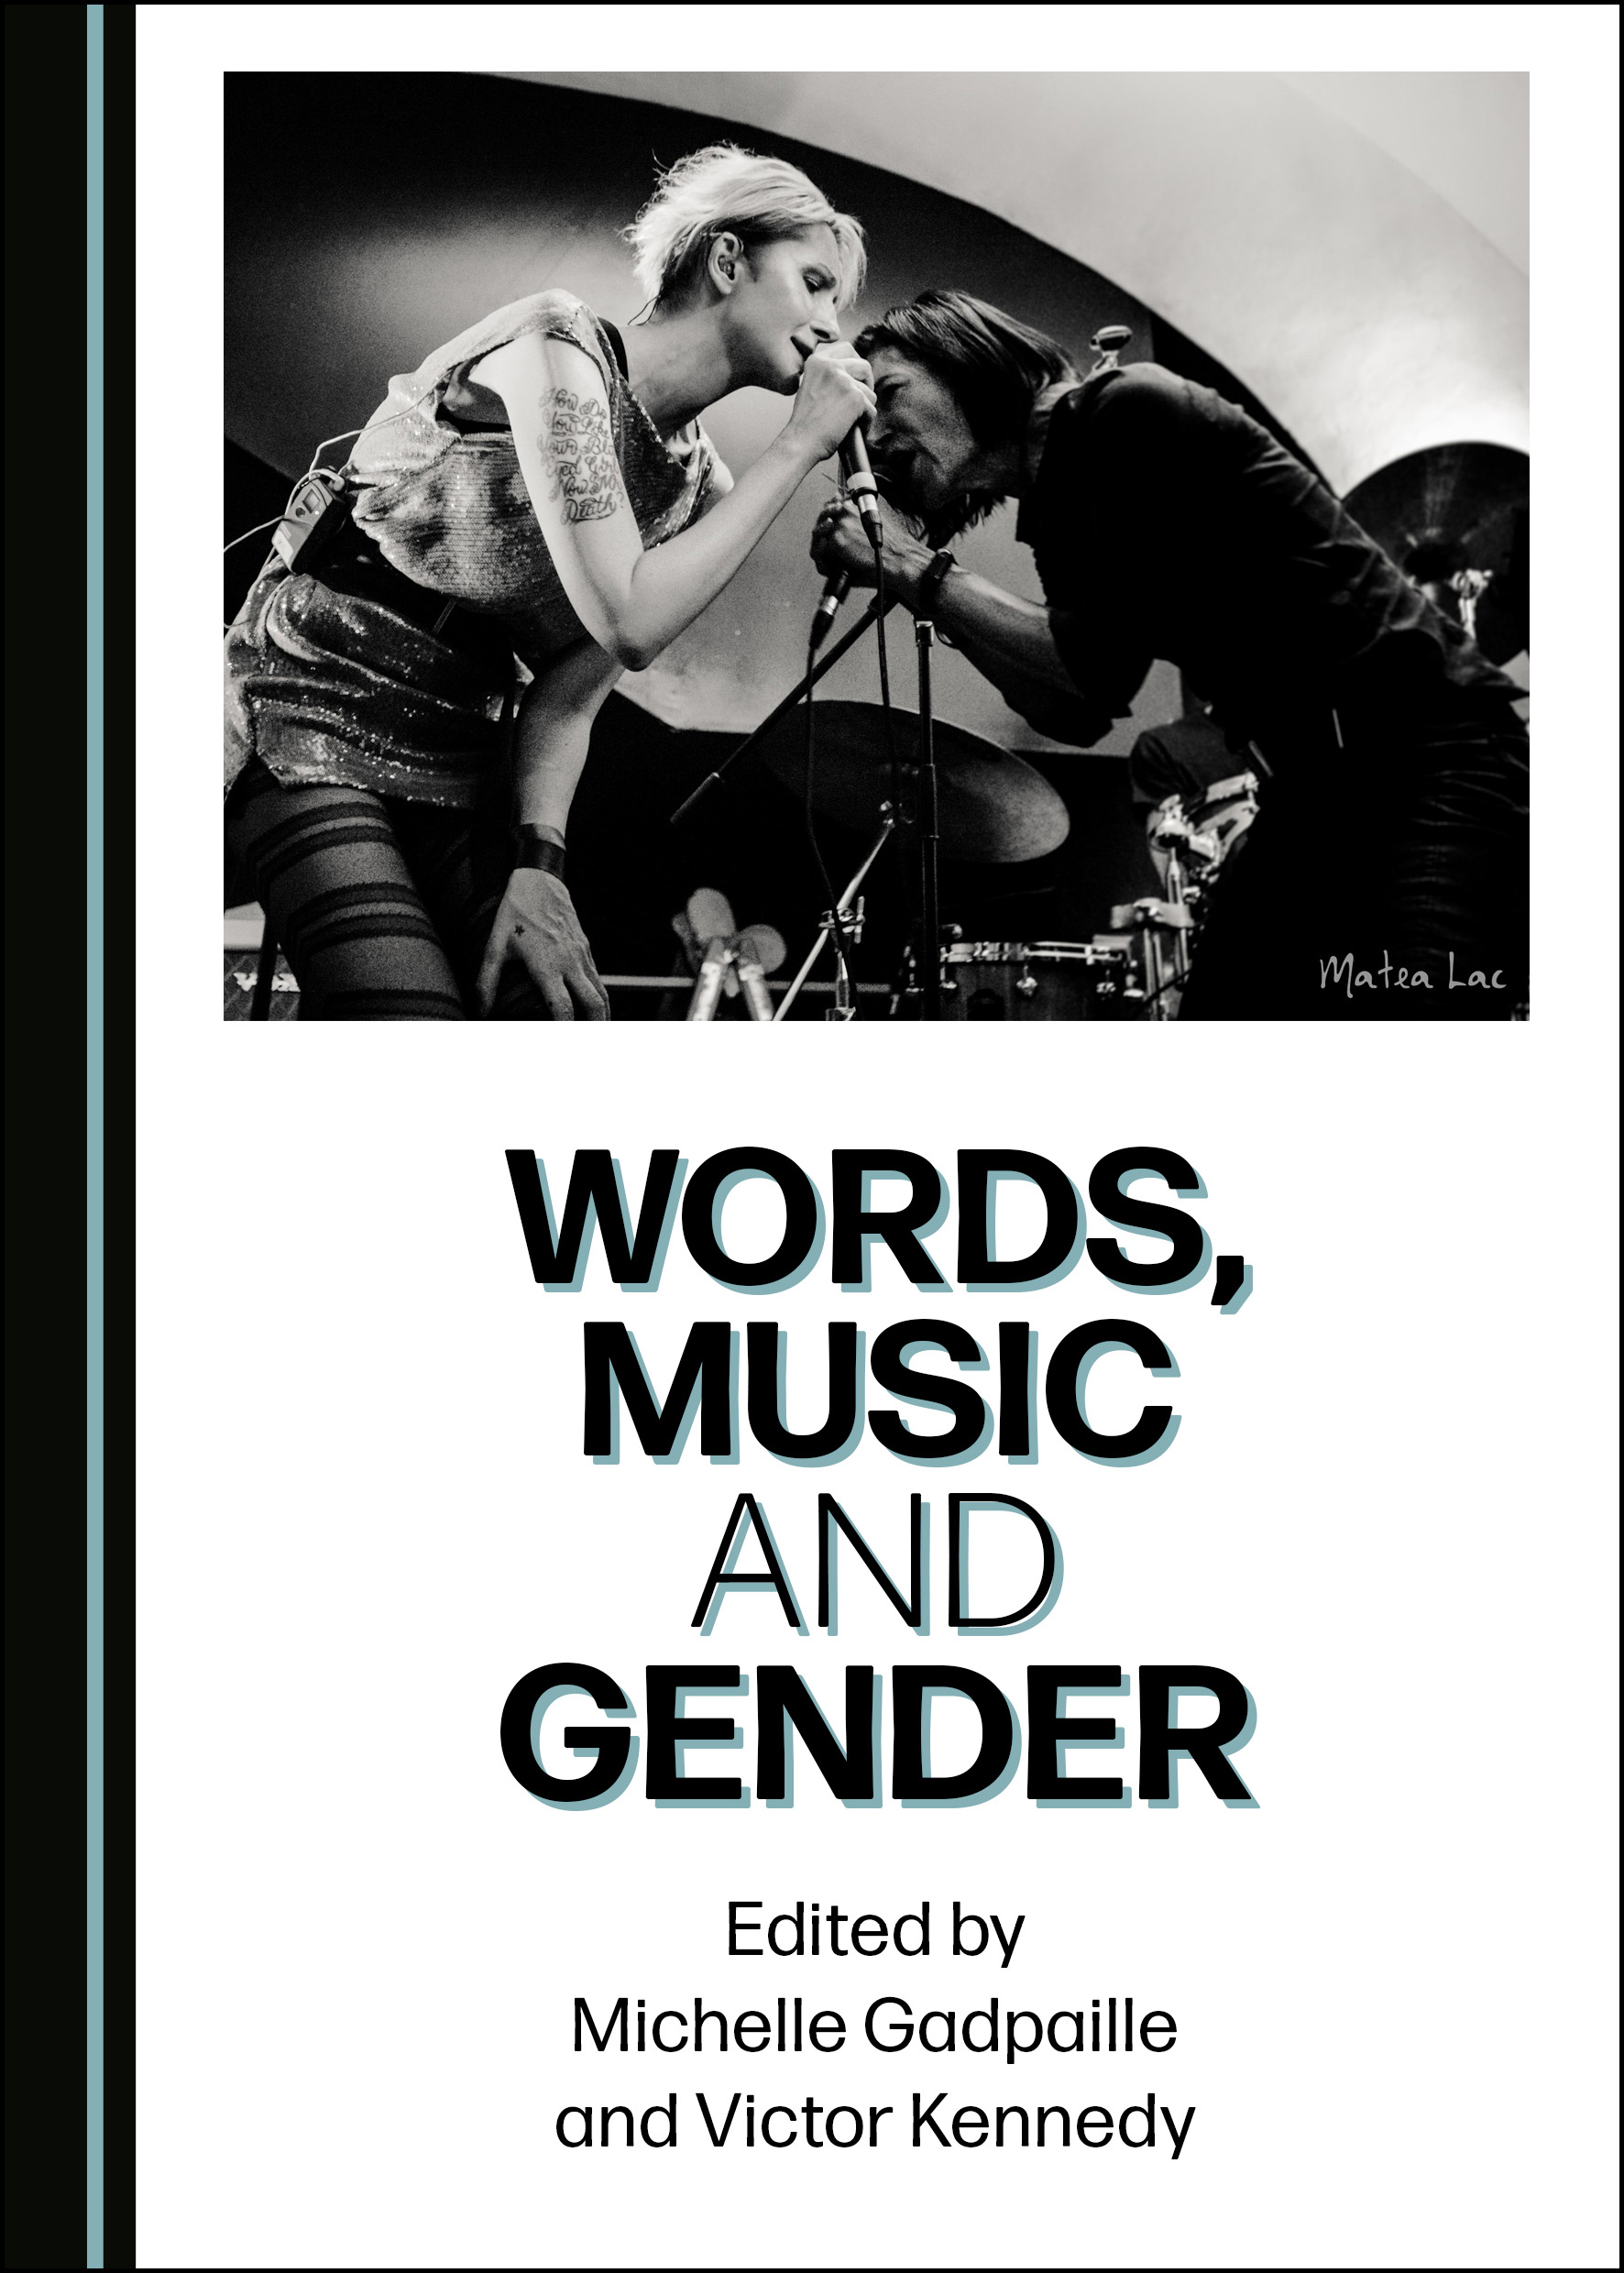 Words, Music and Gender